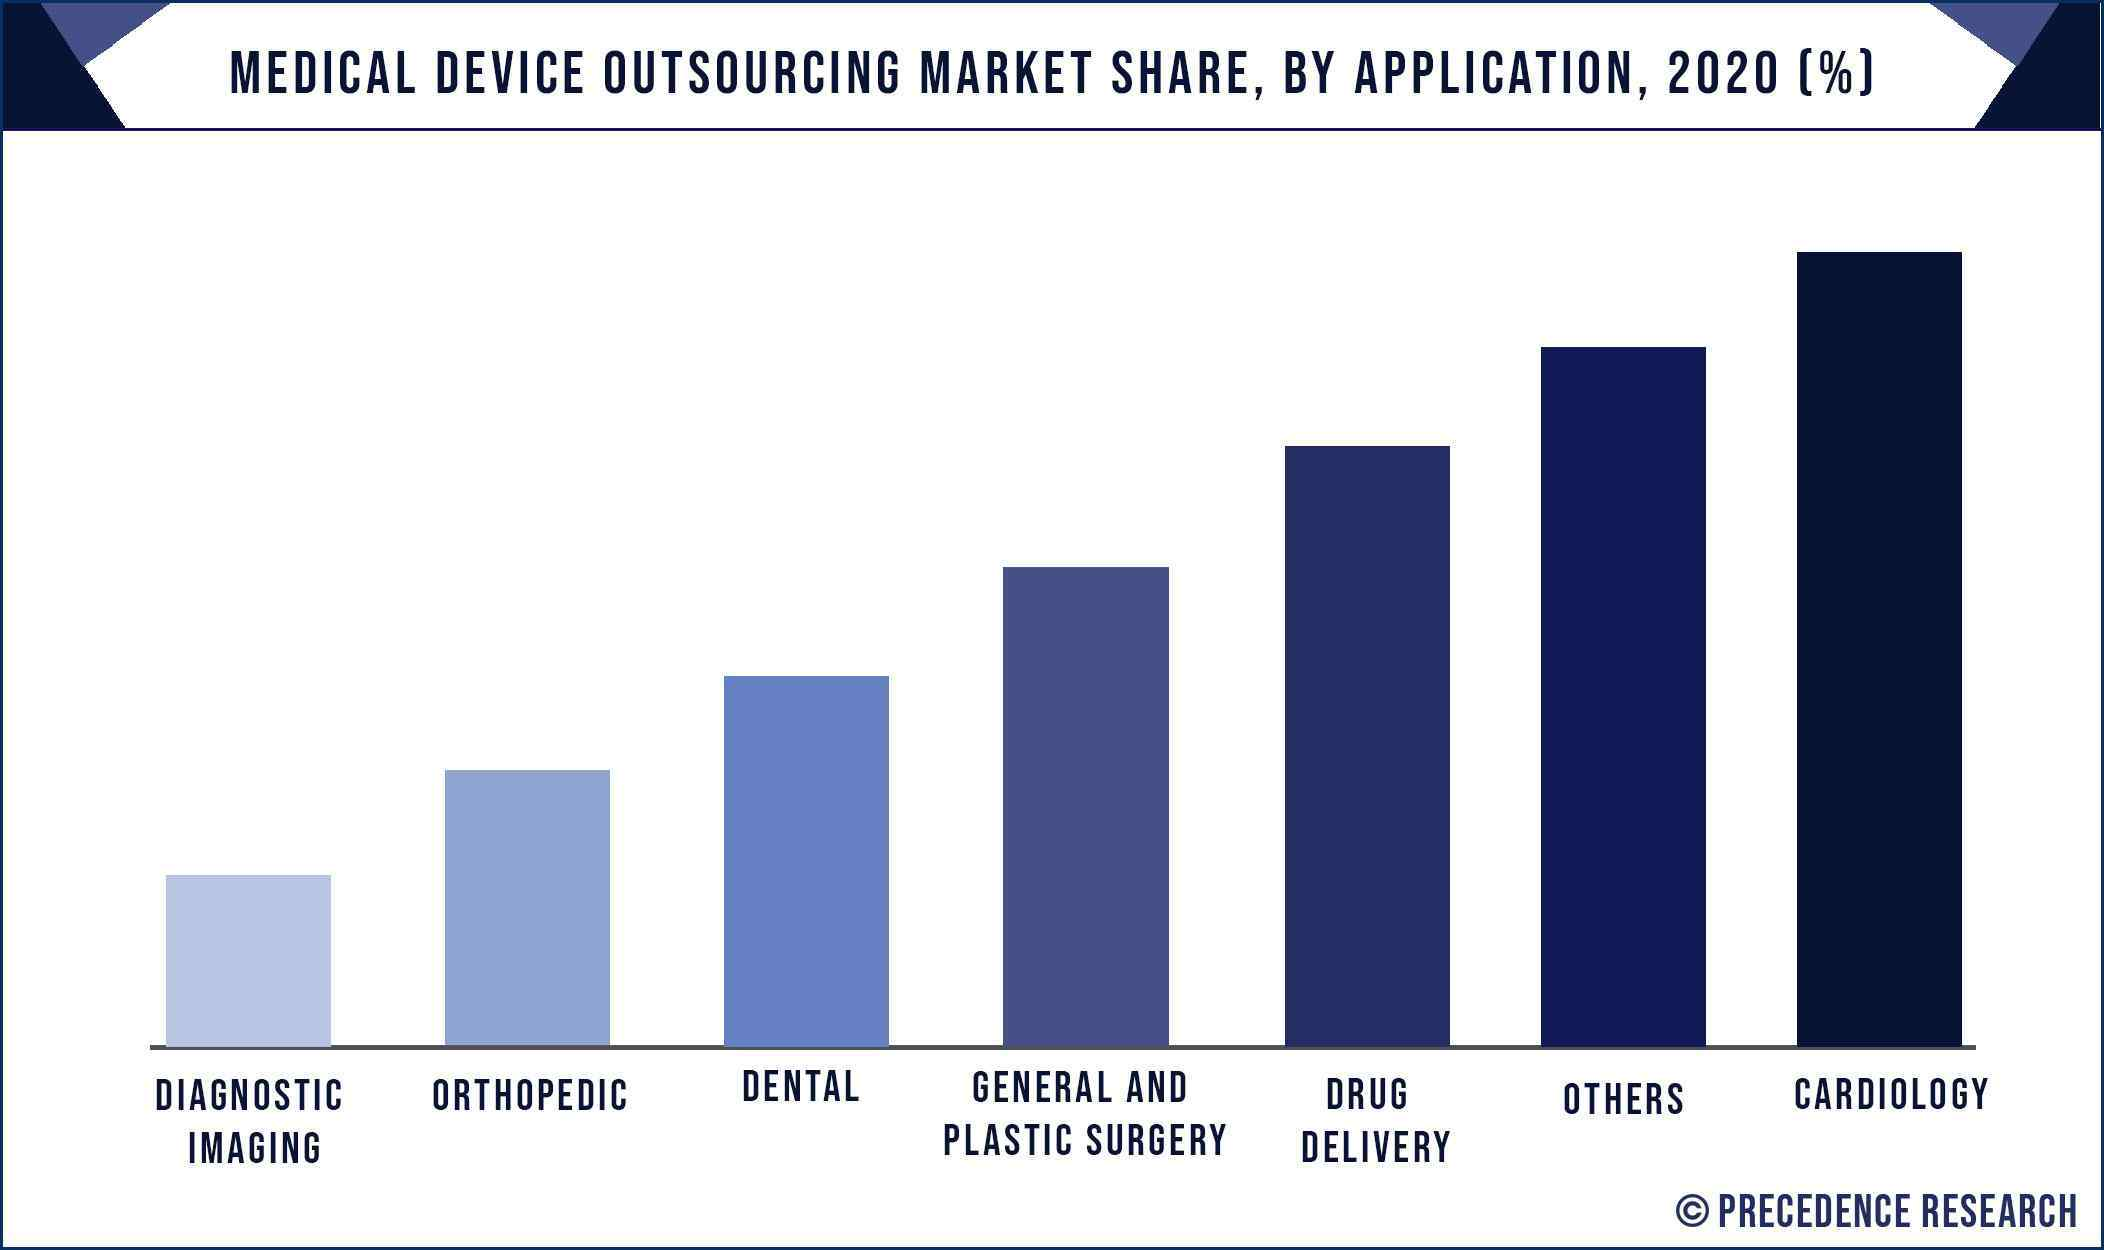 Medical Device Outsourcing Market Share, By Application, 2020 (%)